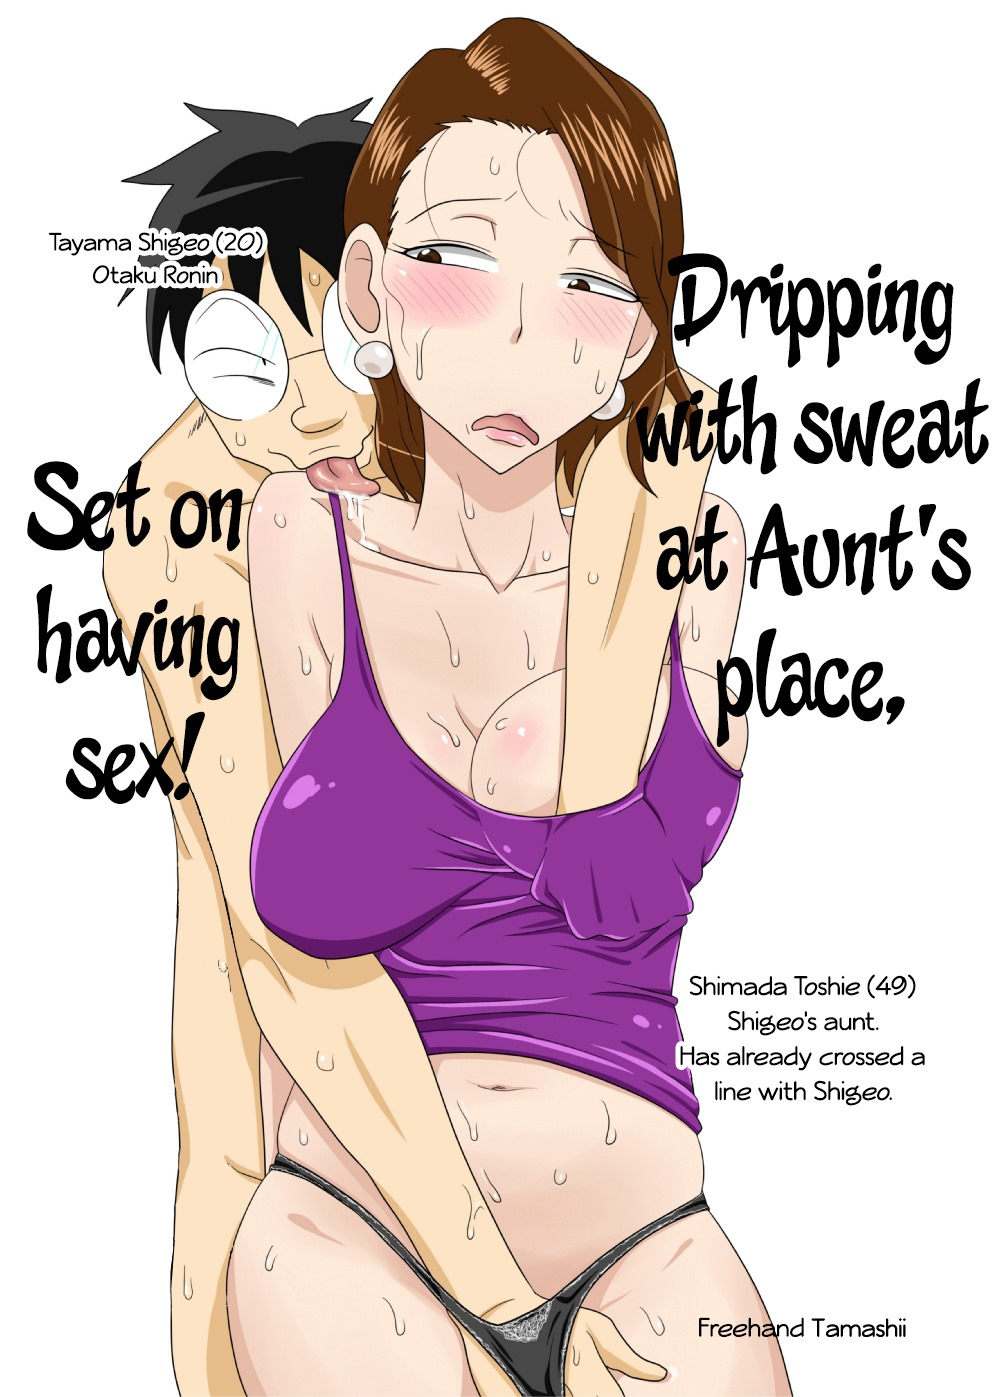 Dripping With Sweat At Aunts Place-Hentai porn comics 8 muses